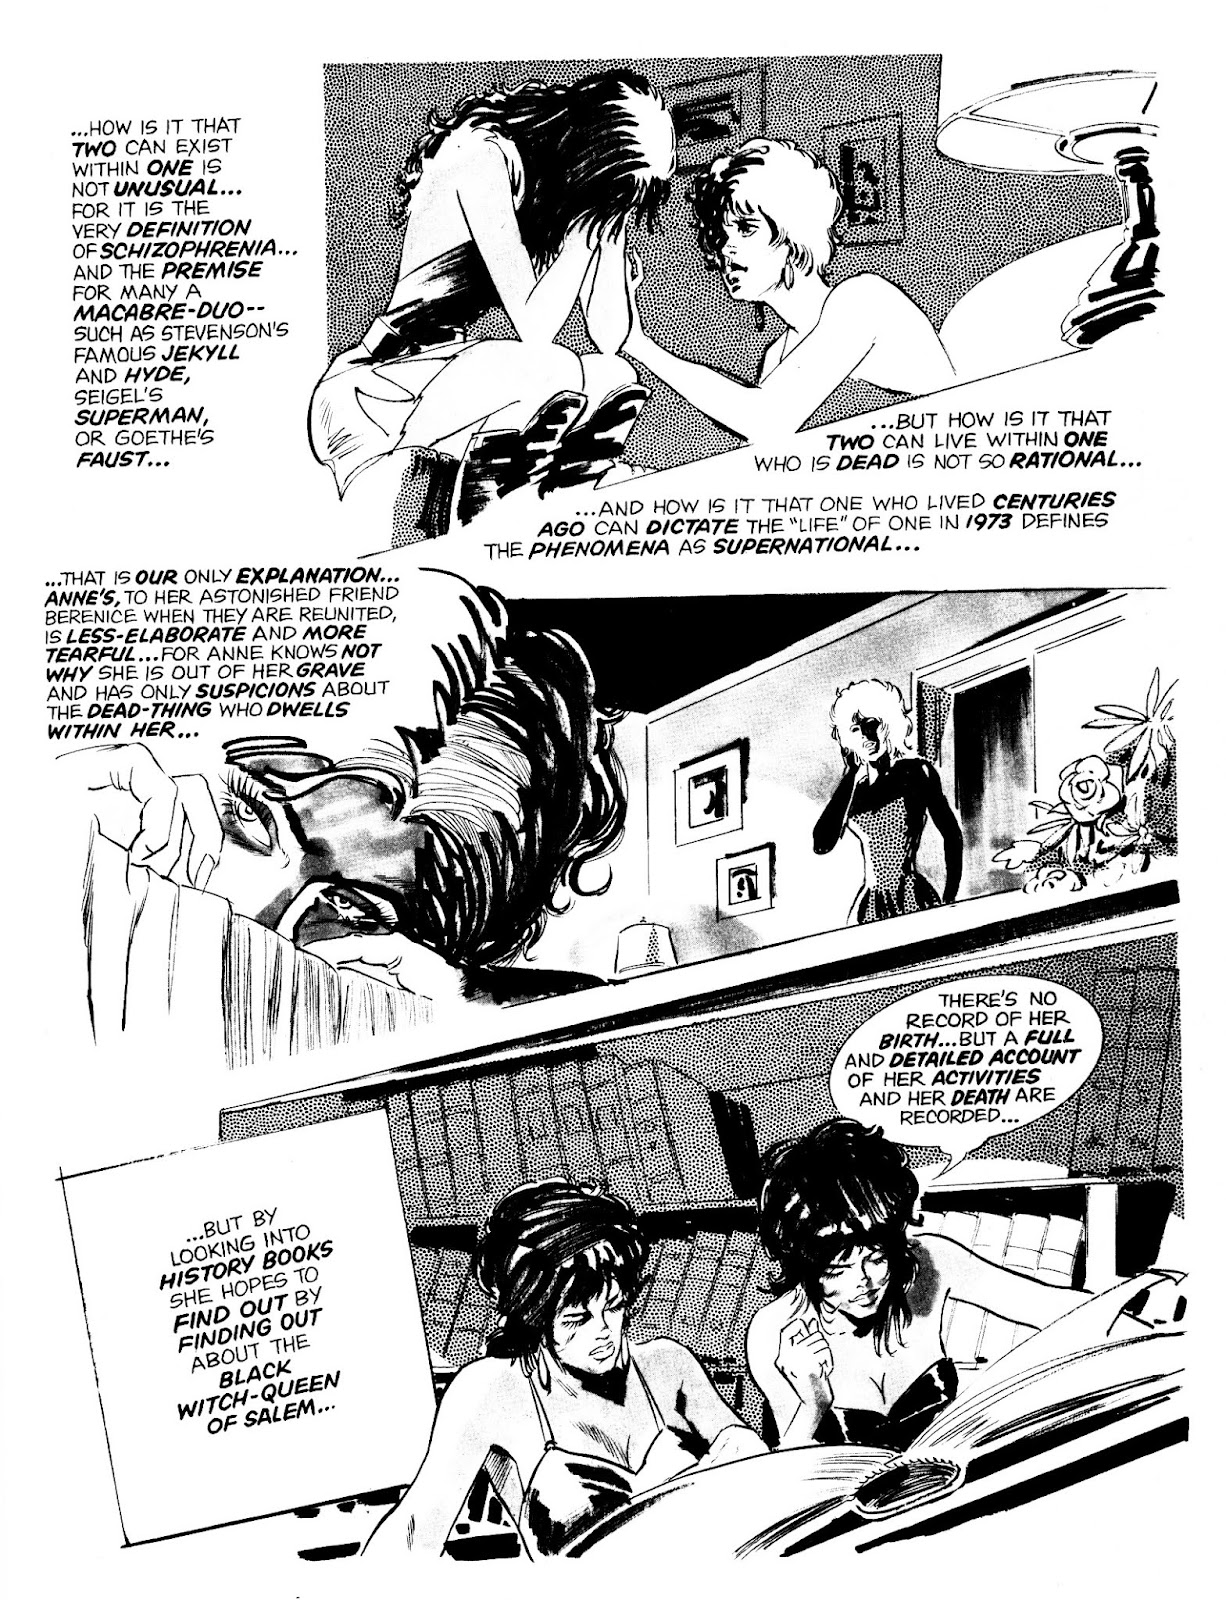 Scream (1973) issue 3 - Page 27